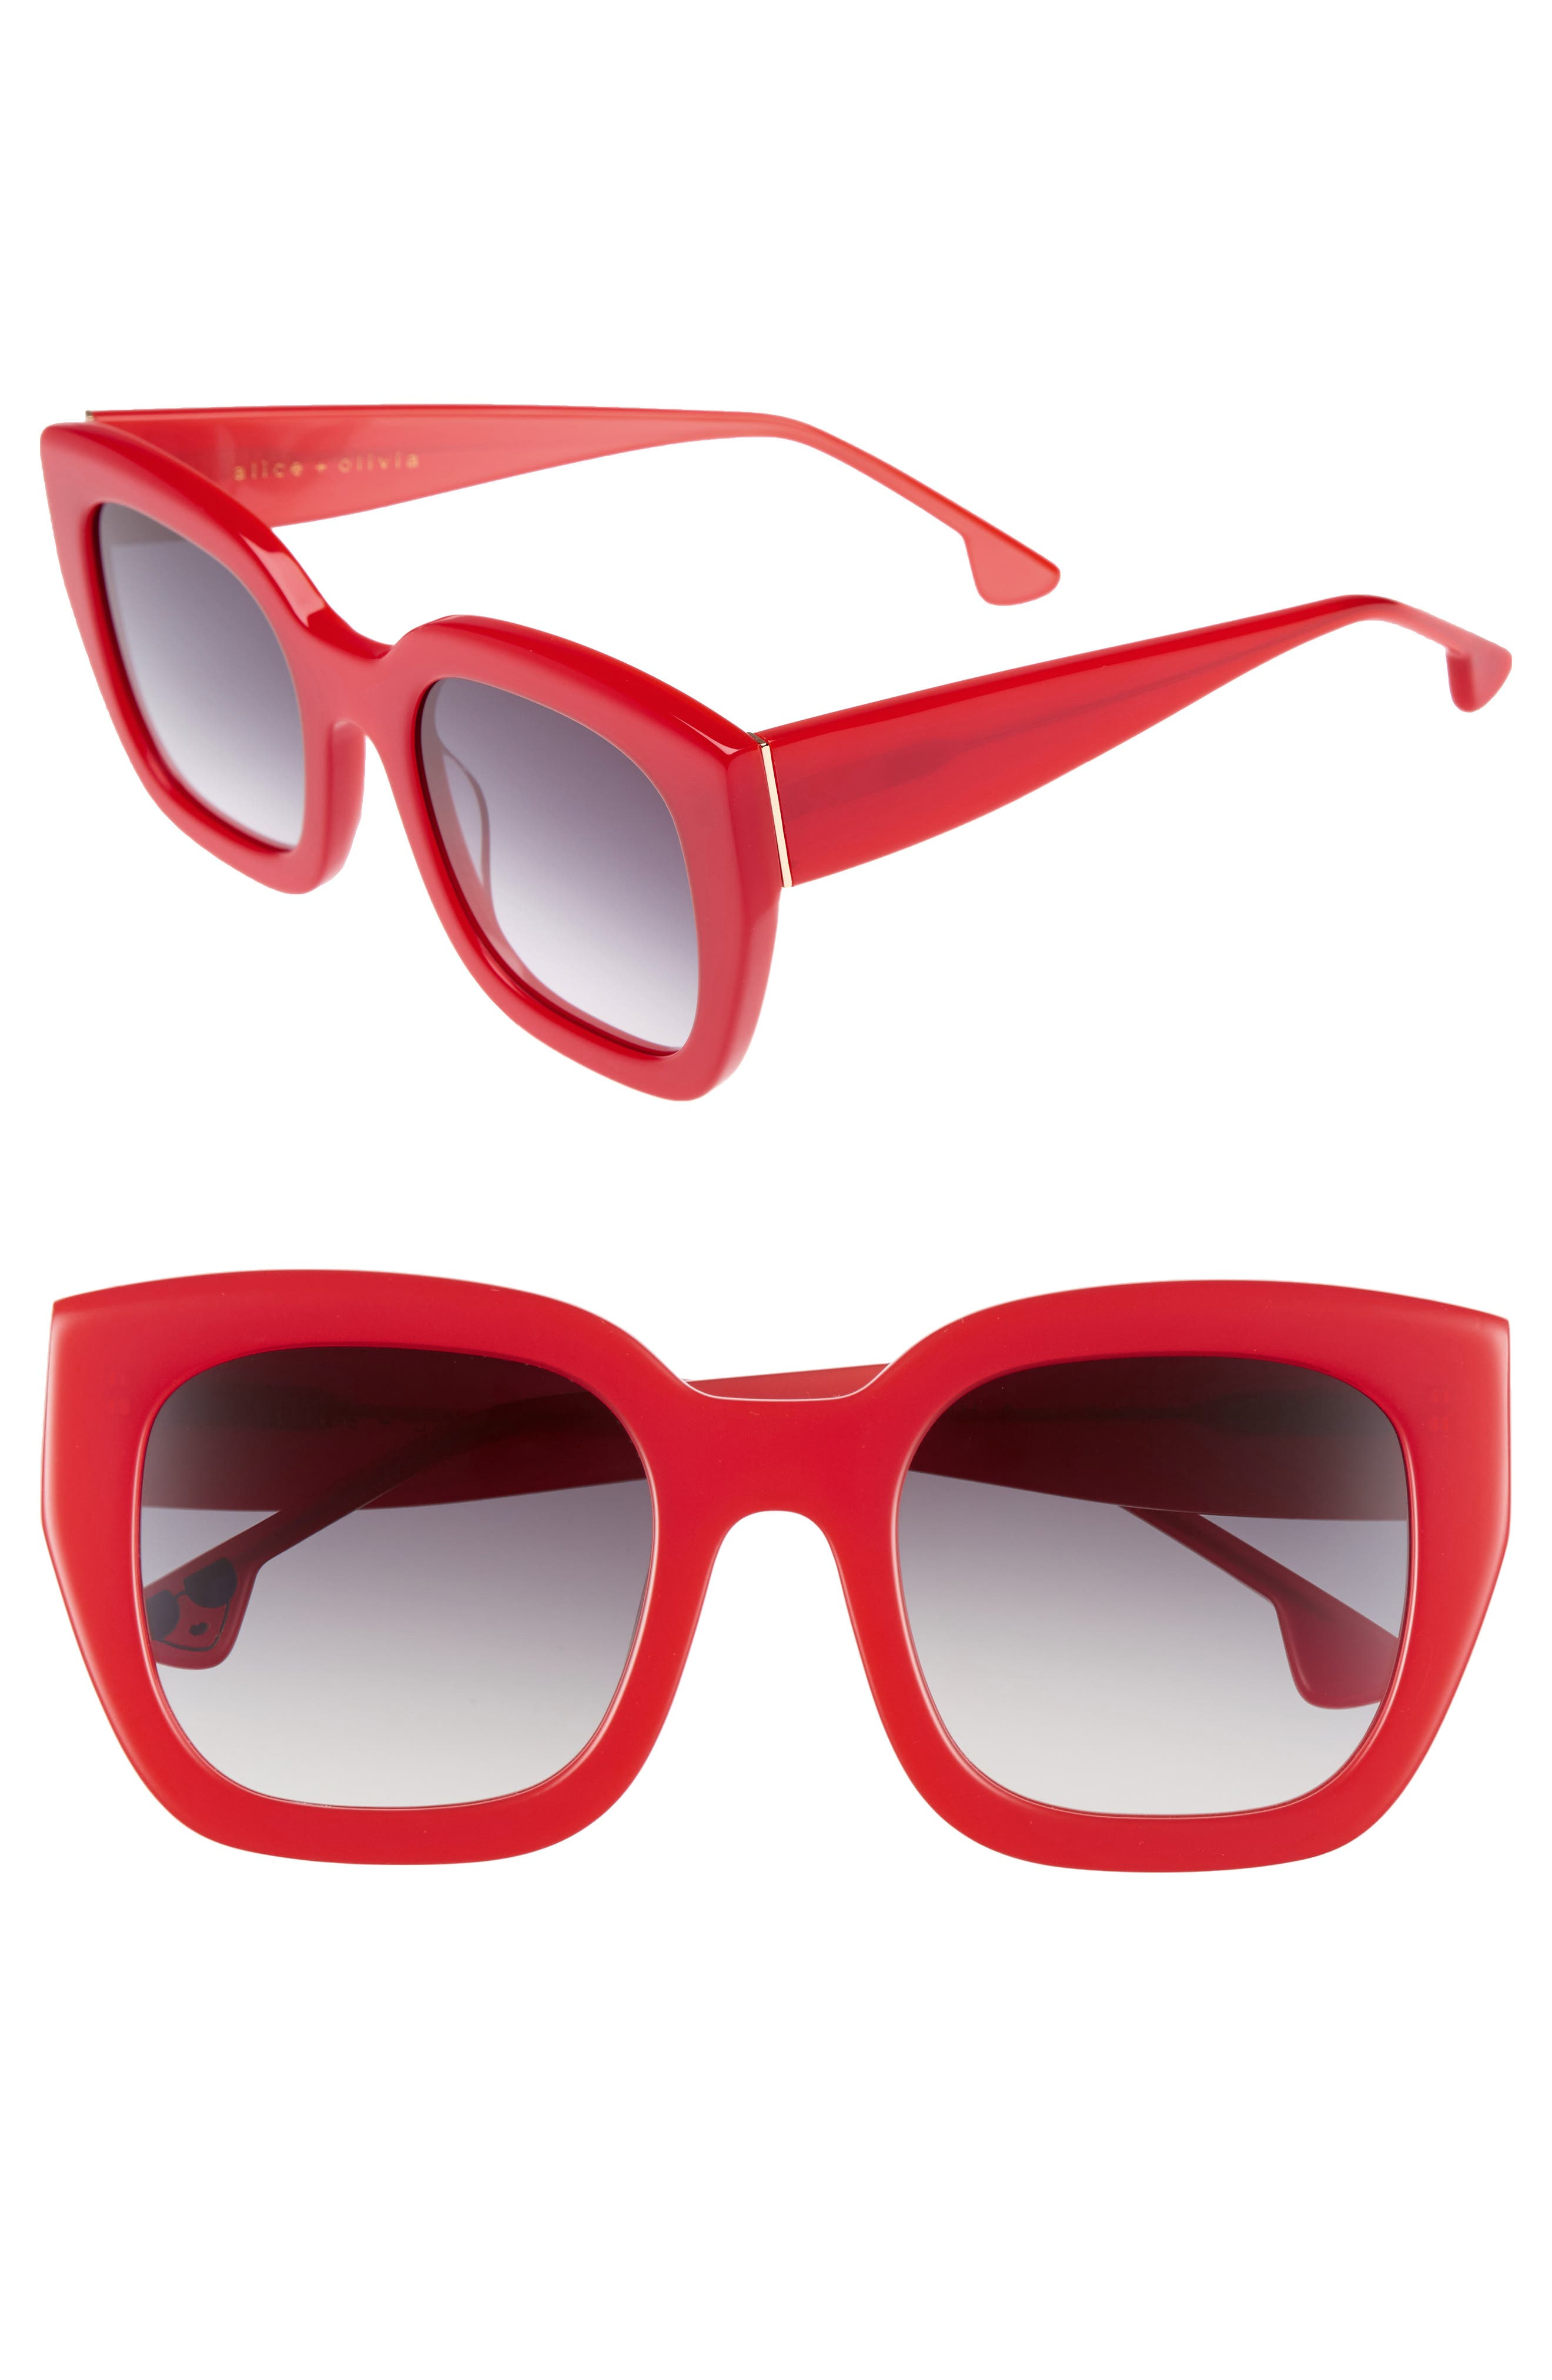 Aberdeen 50mm Square Sunglasses,                             Main thumbnail 1, color,                             Poppy